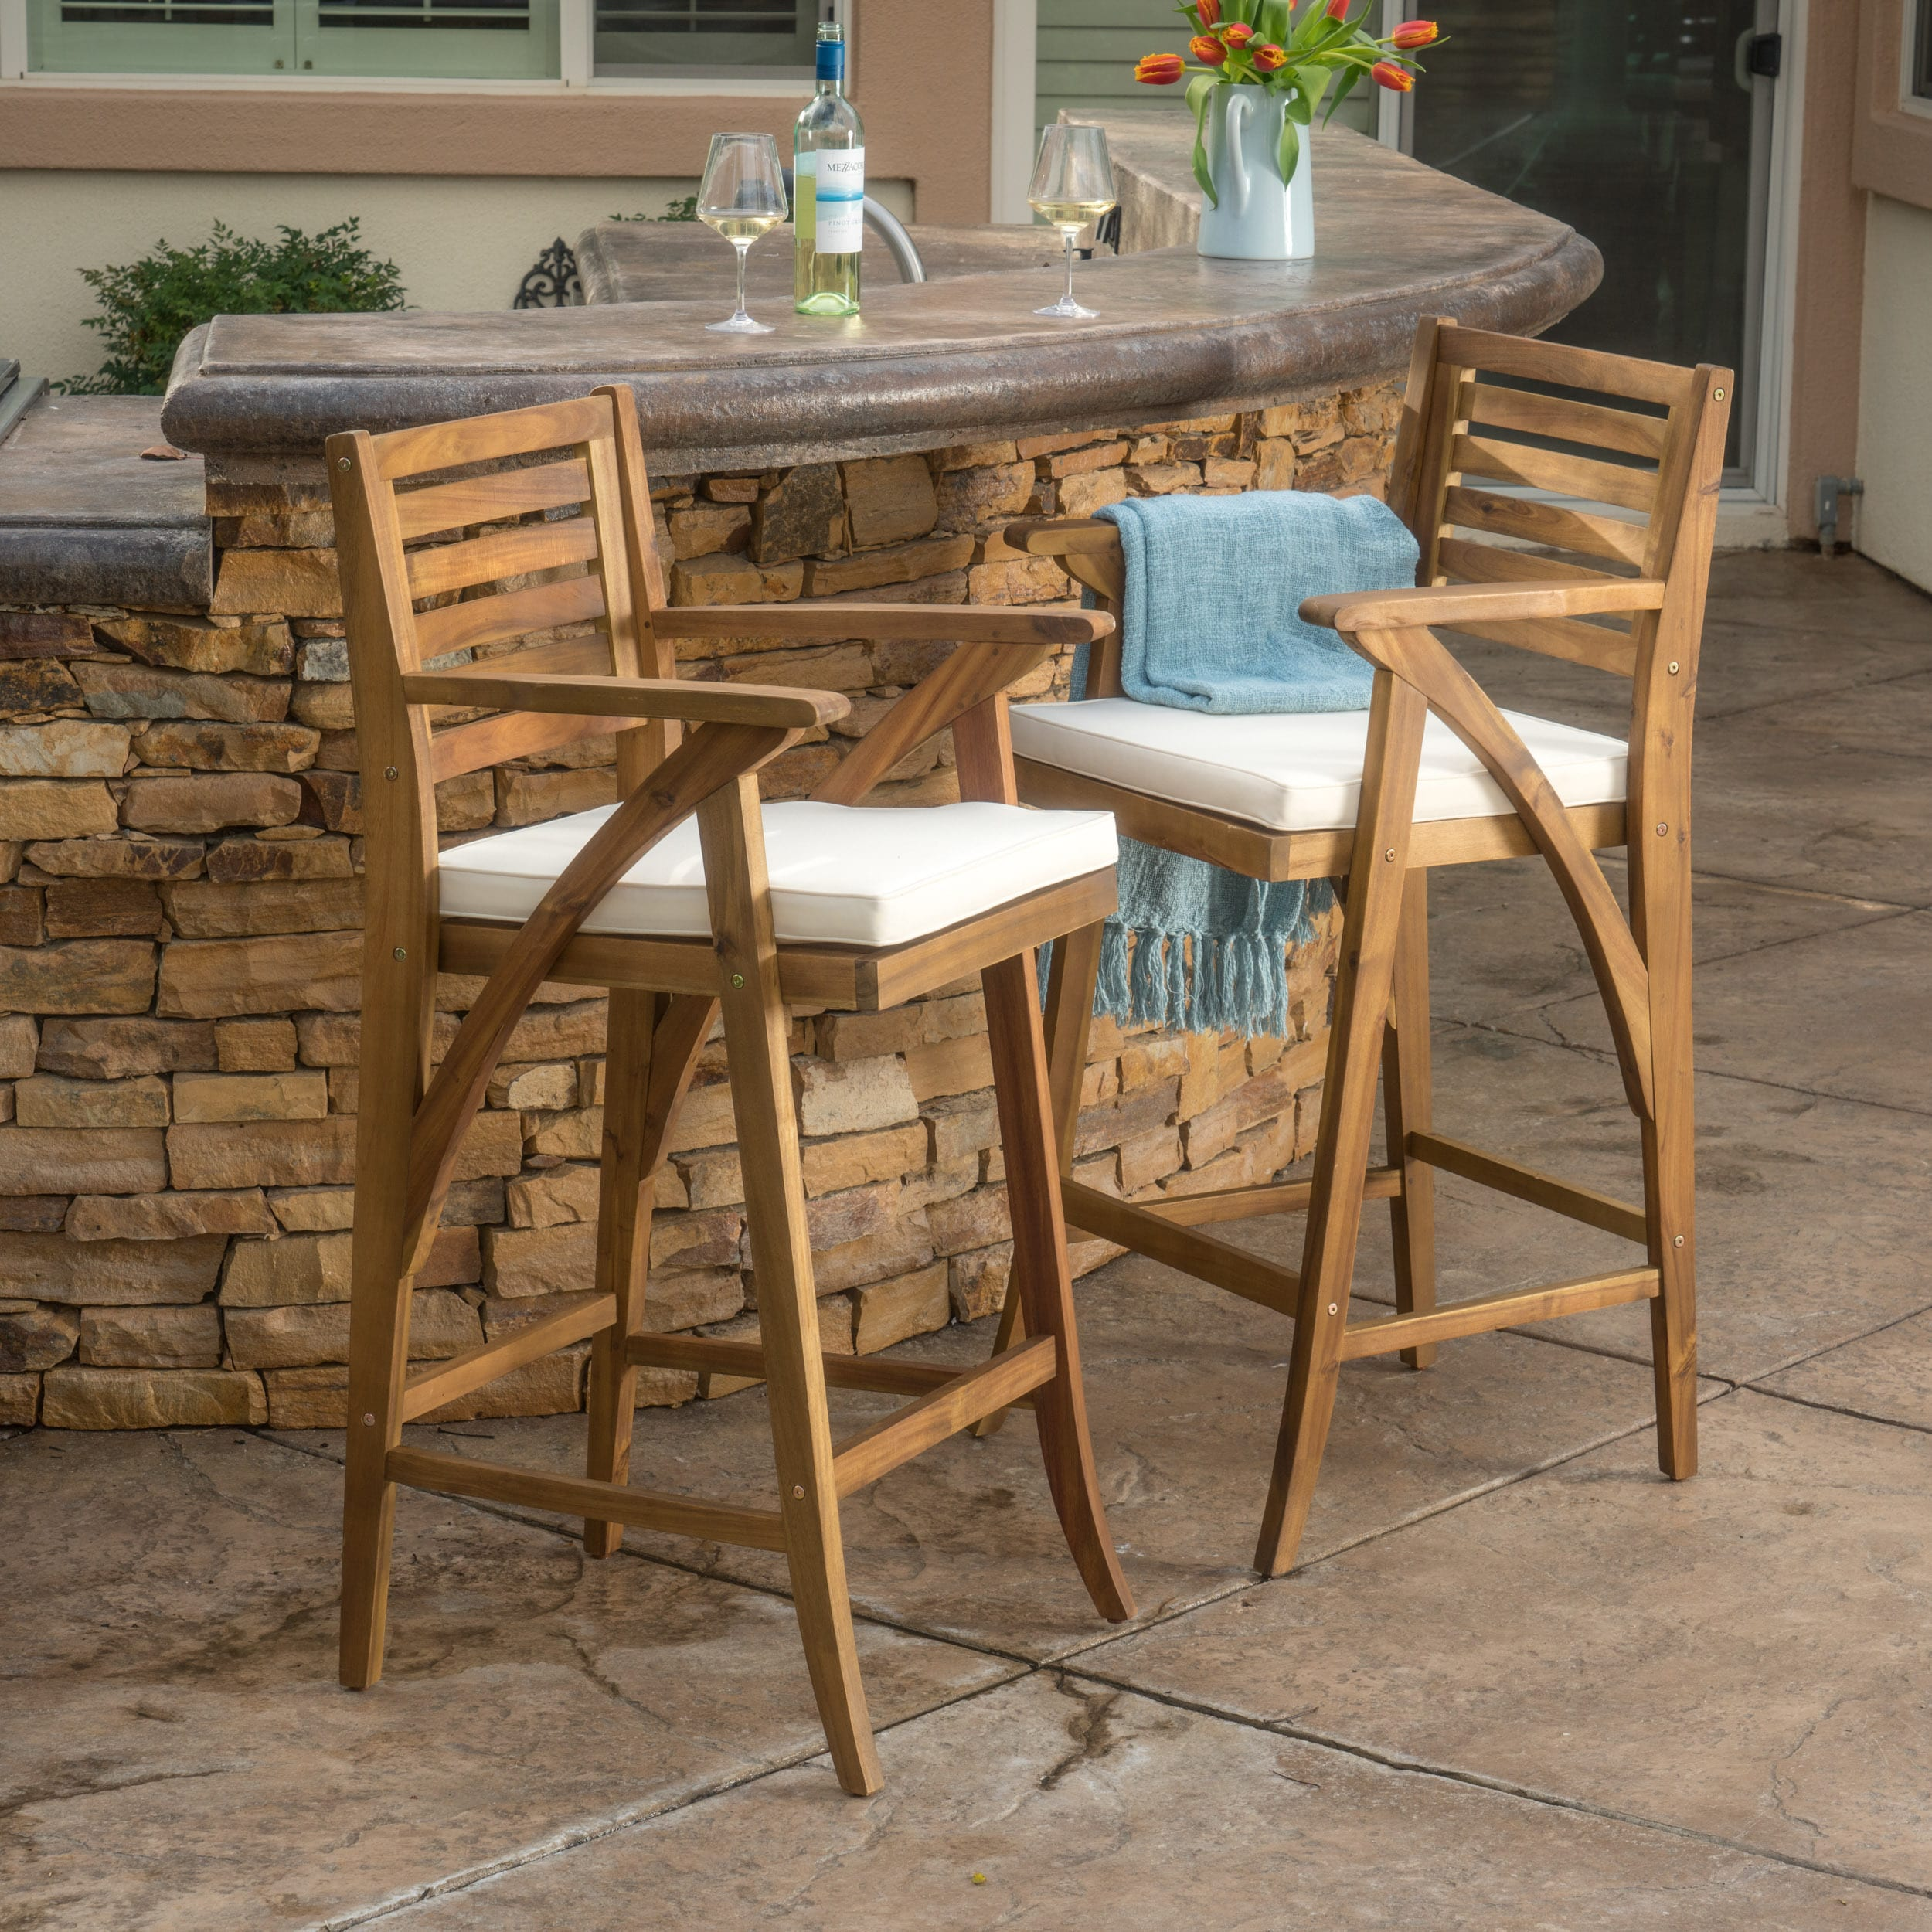 Christopher Knight Home Hermosa Outdoor Acacia Wood Barstool with Cushion (Set of 2) by